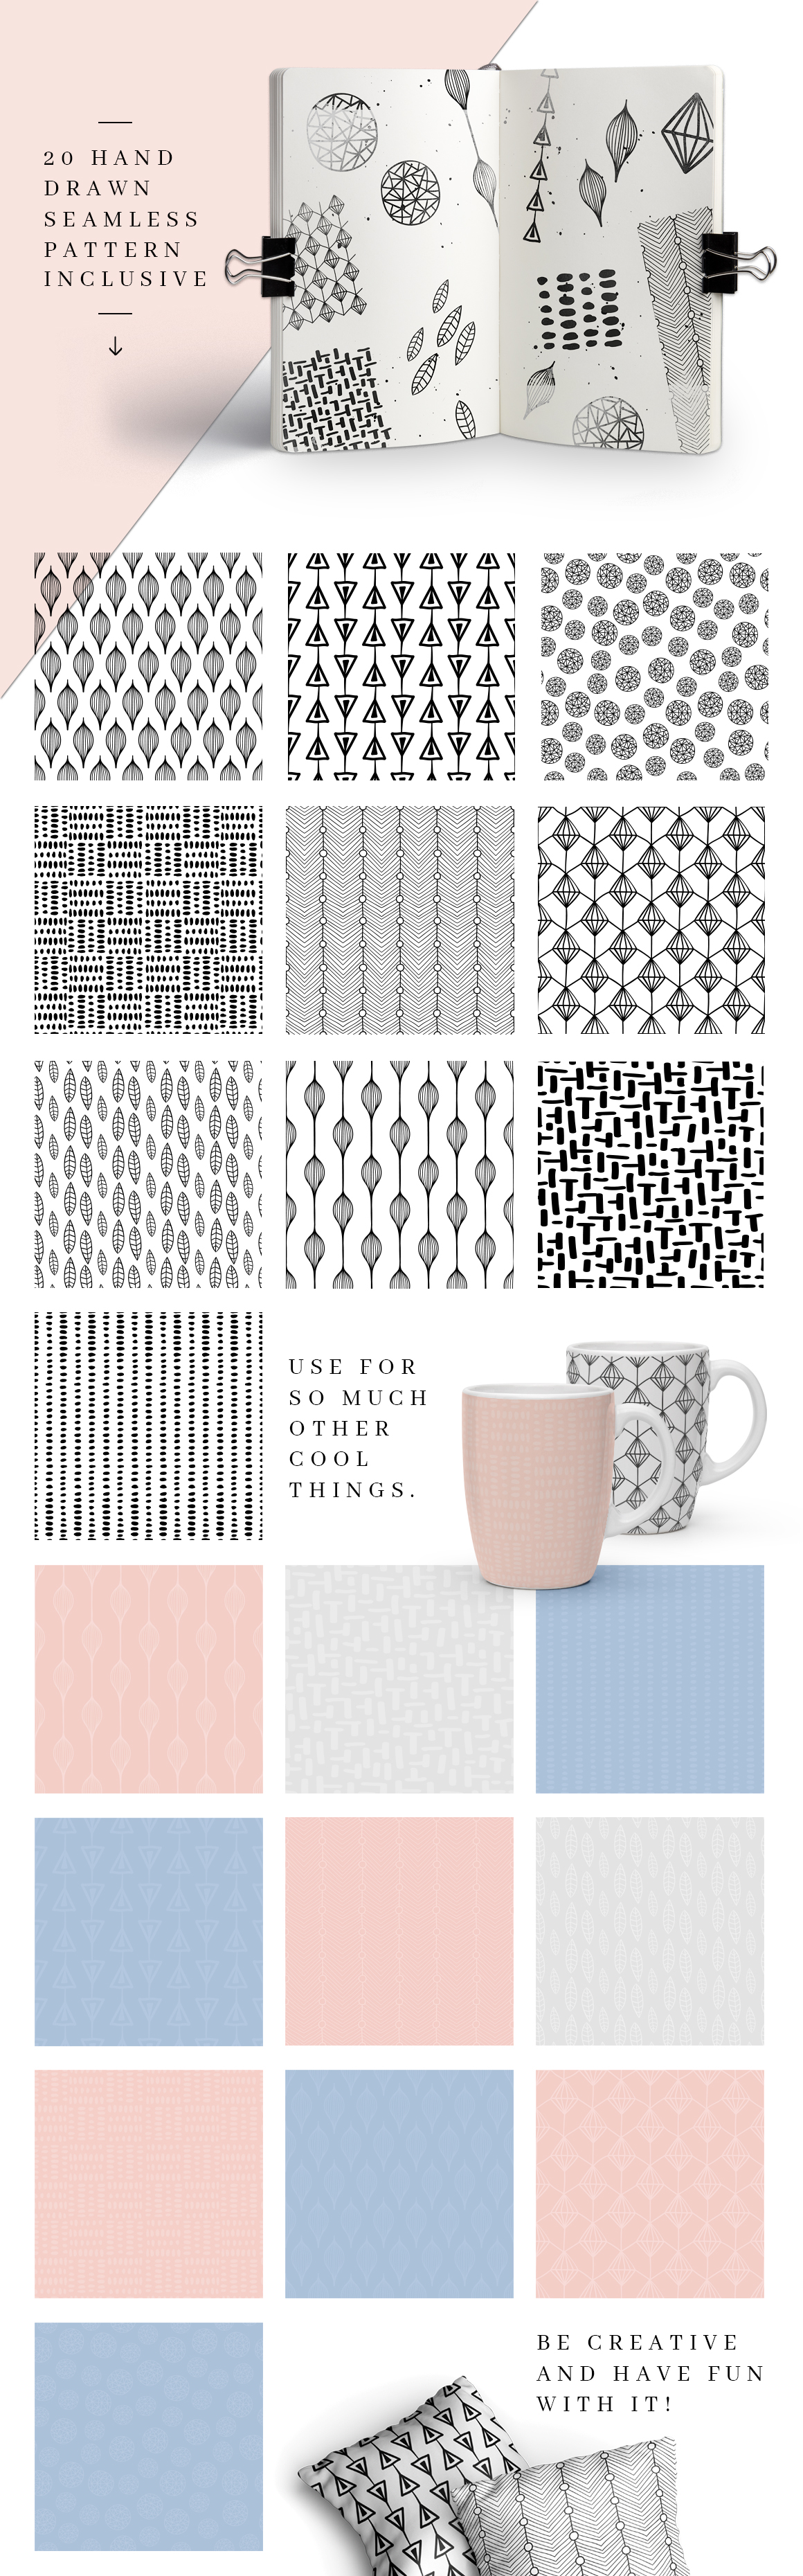 MALINA Business Cards + Logos + Pattern example image 6